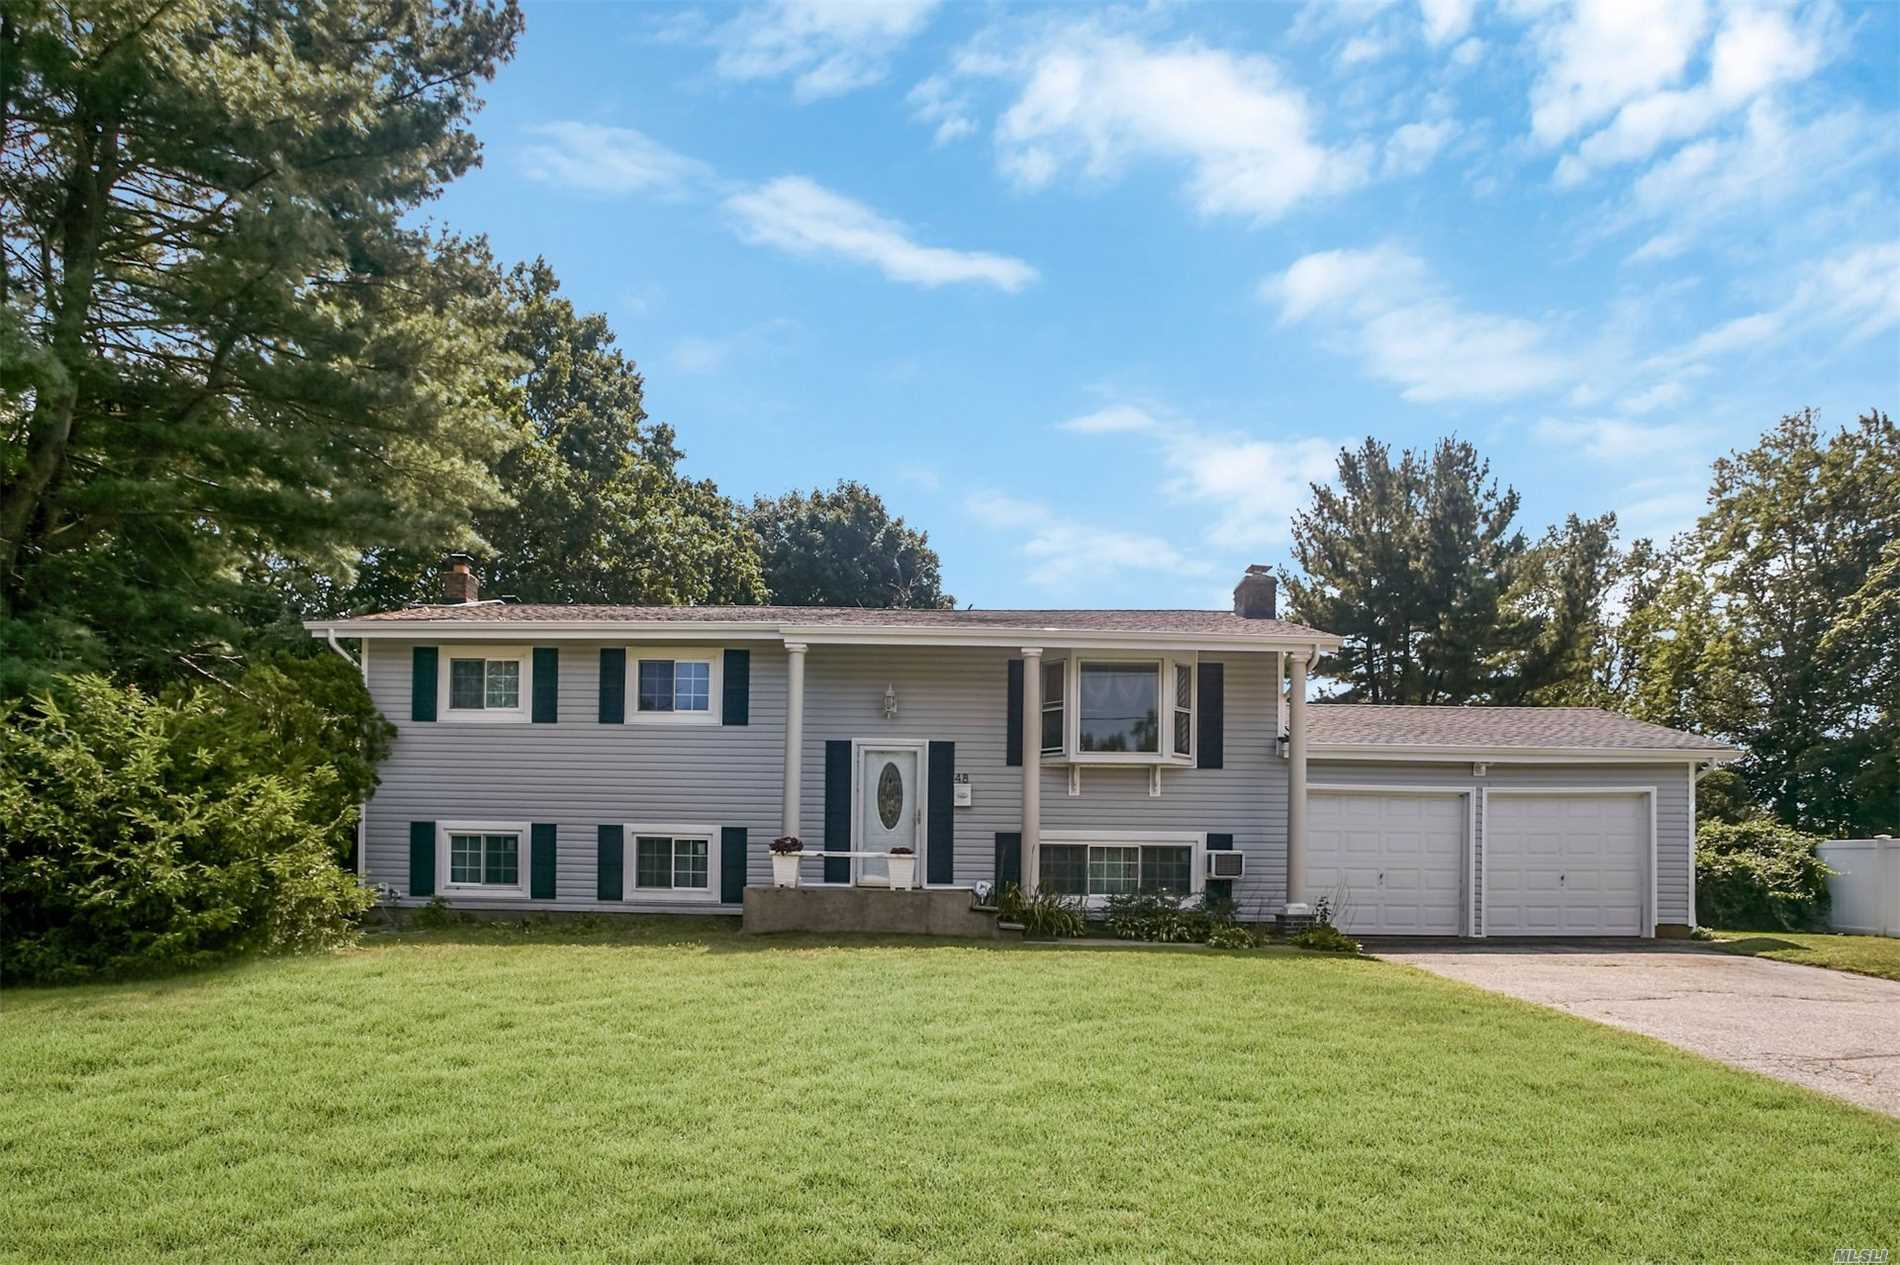 Gorgeous 5 Bedroom 2 Full Bathroom Hi Ranch In Wheatley Heights And Half Hollow Hills School District. Large Backyard With Pool, And Huge Deck. Wow There Just Too Much To Write About. This A Must See Now It Wont Last Make An Appointment Today.